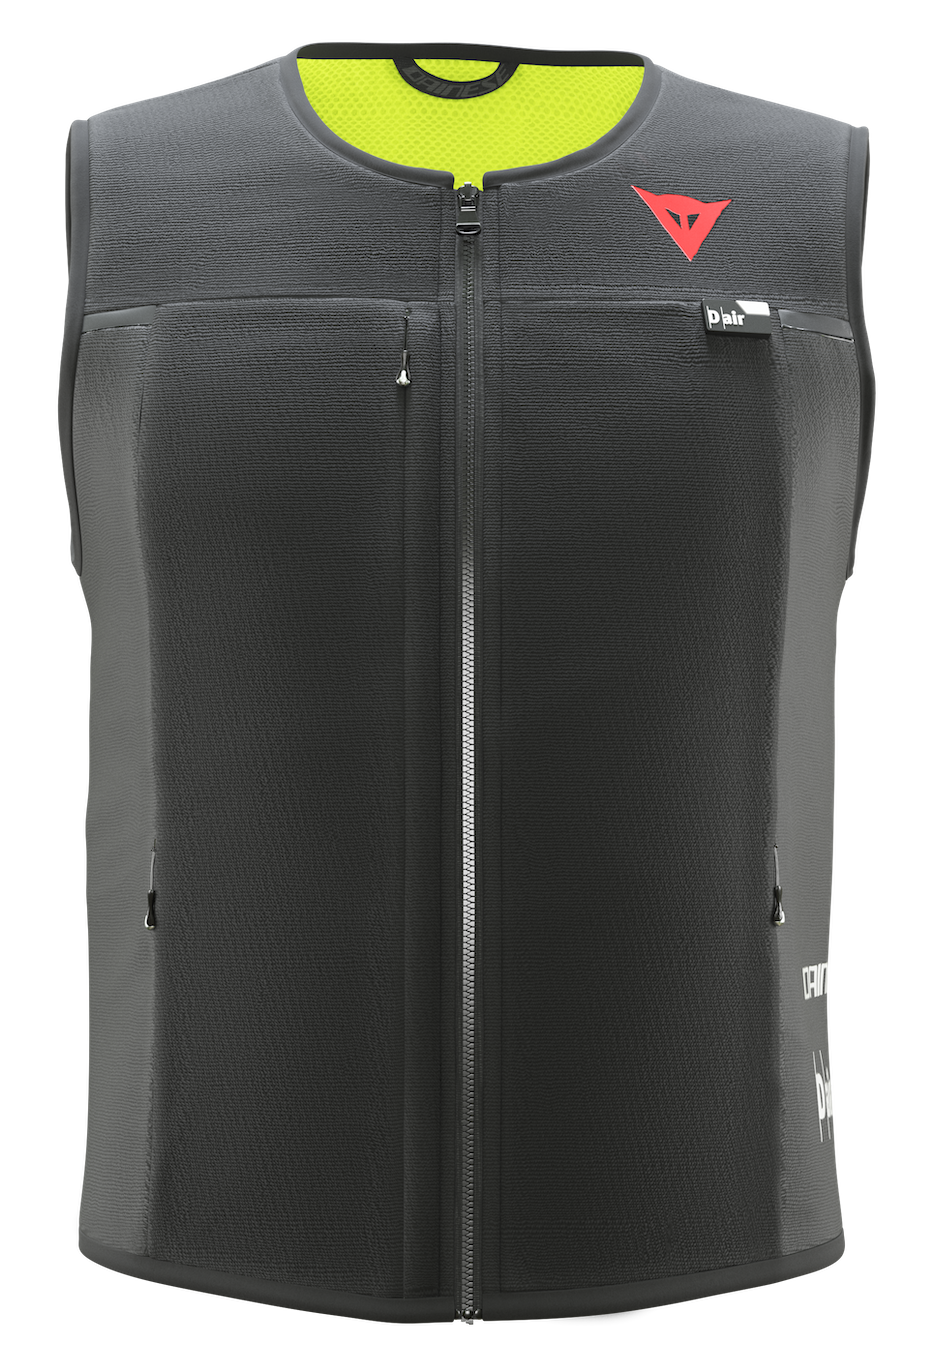 Full, standalone, wireless, mesh airbag vest